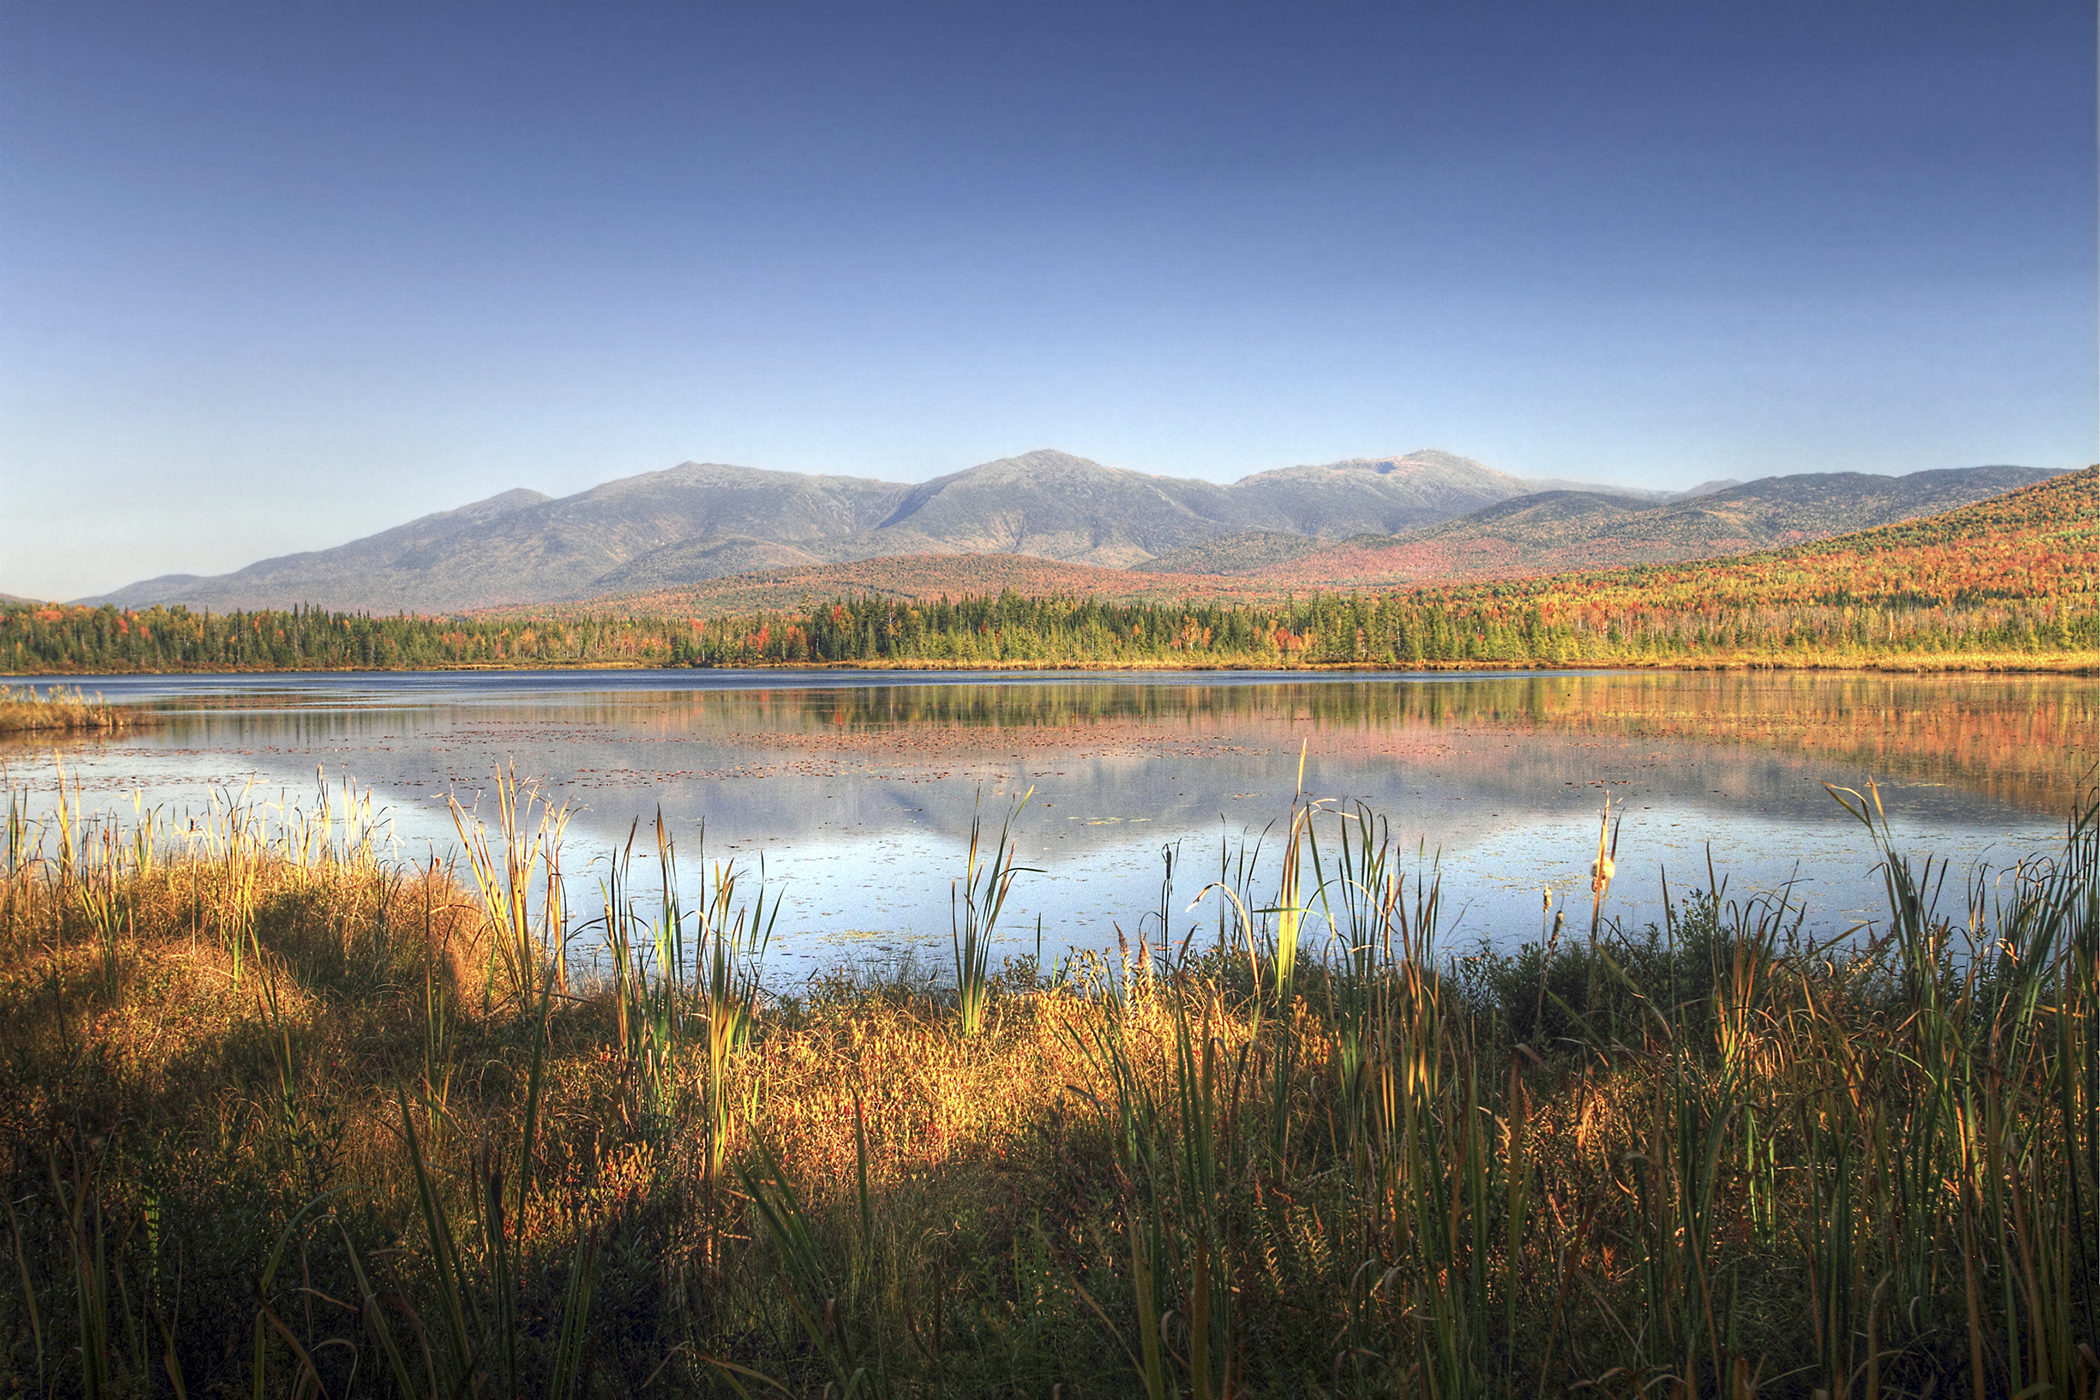 A view across Cherry Pond or Pondicherry with White Mountains Presidential range in background.